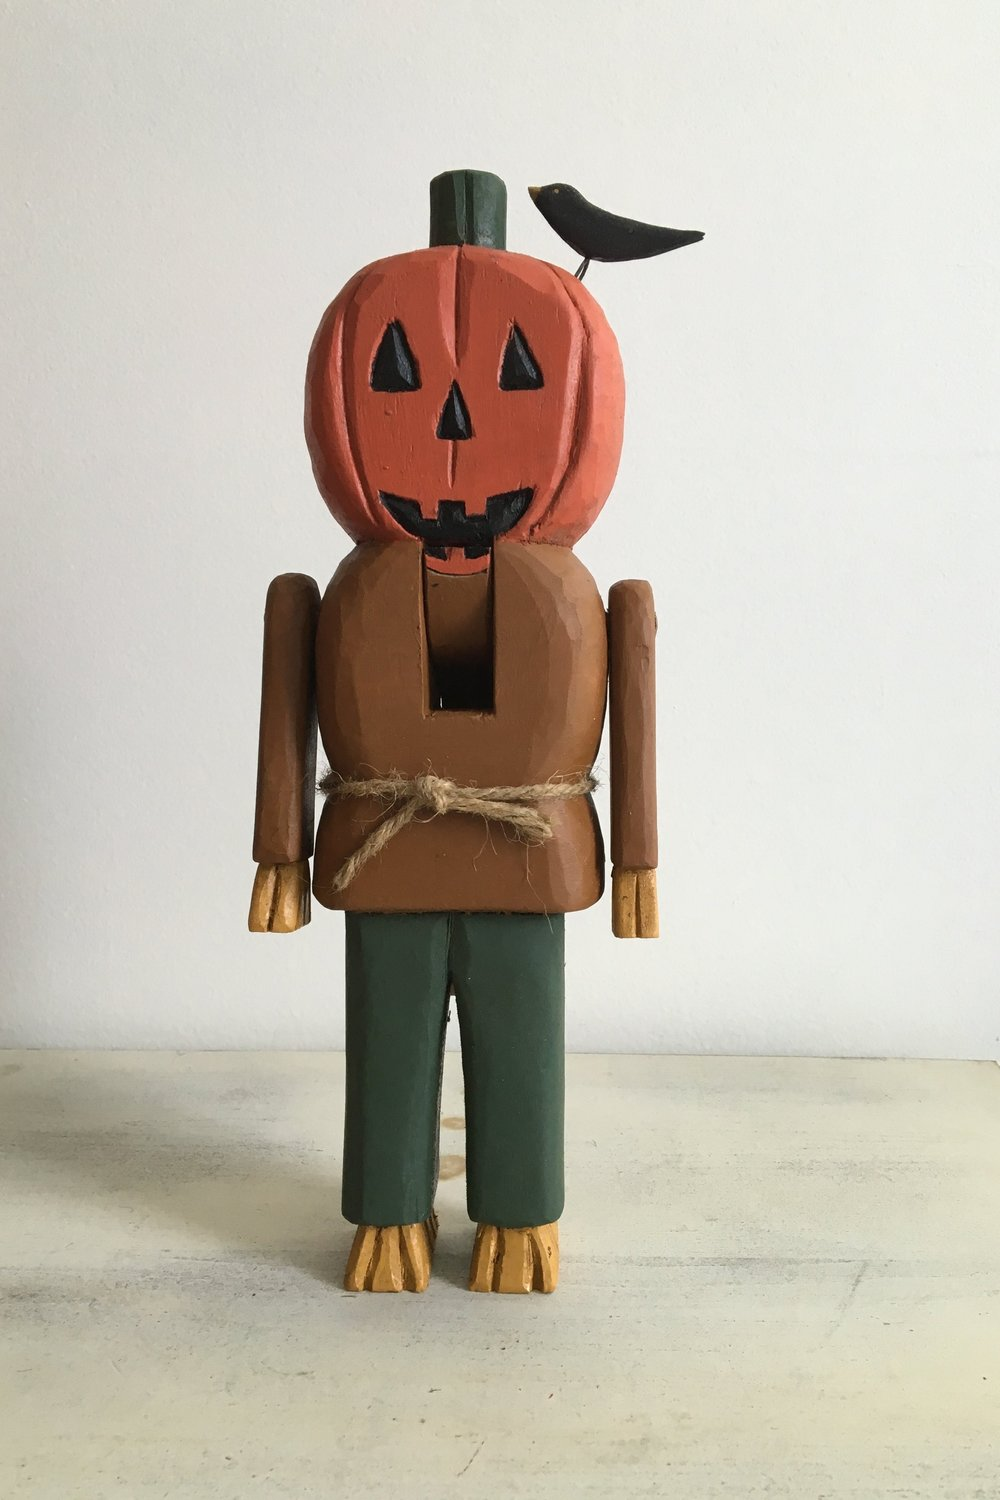 Pumpkin Man with a Crow  : To add this piece   to your collection, you can email us through the contact page.